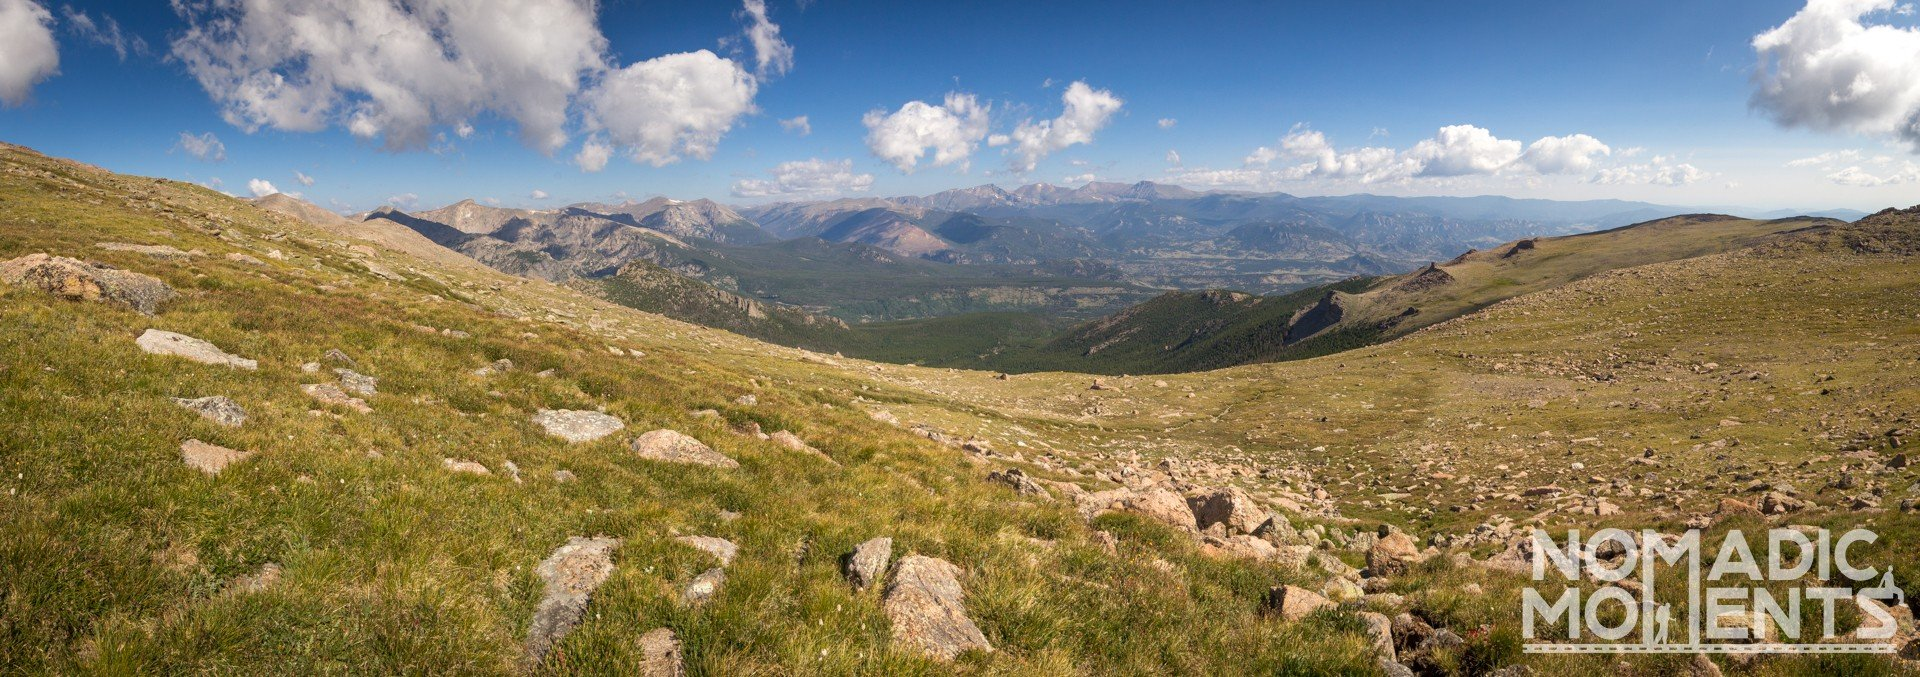 A view over Rocky Mountain National Park from the Long Peak trail.